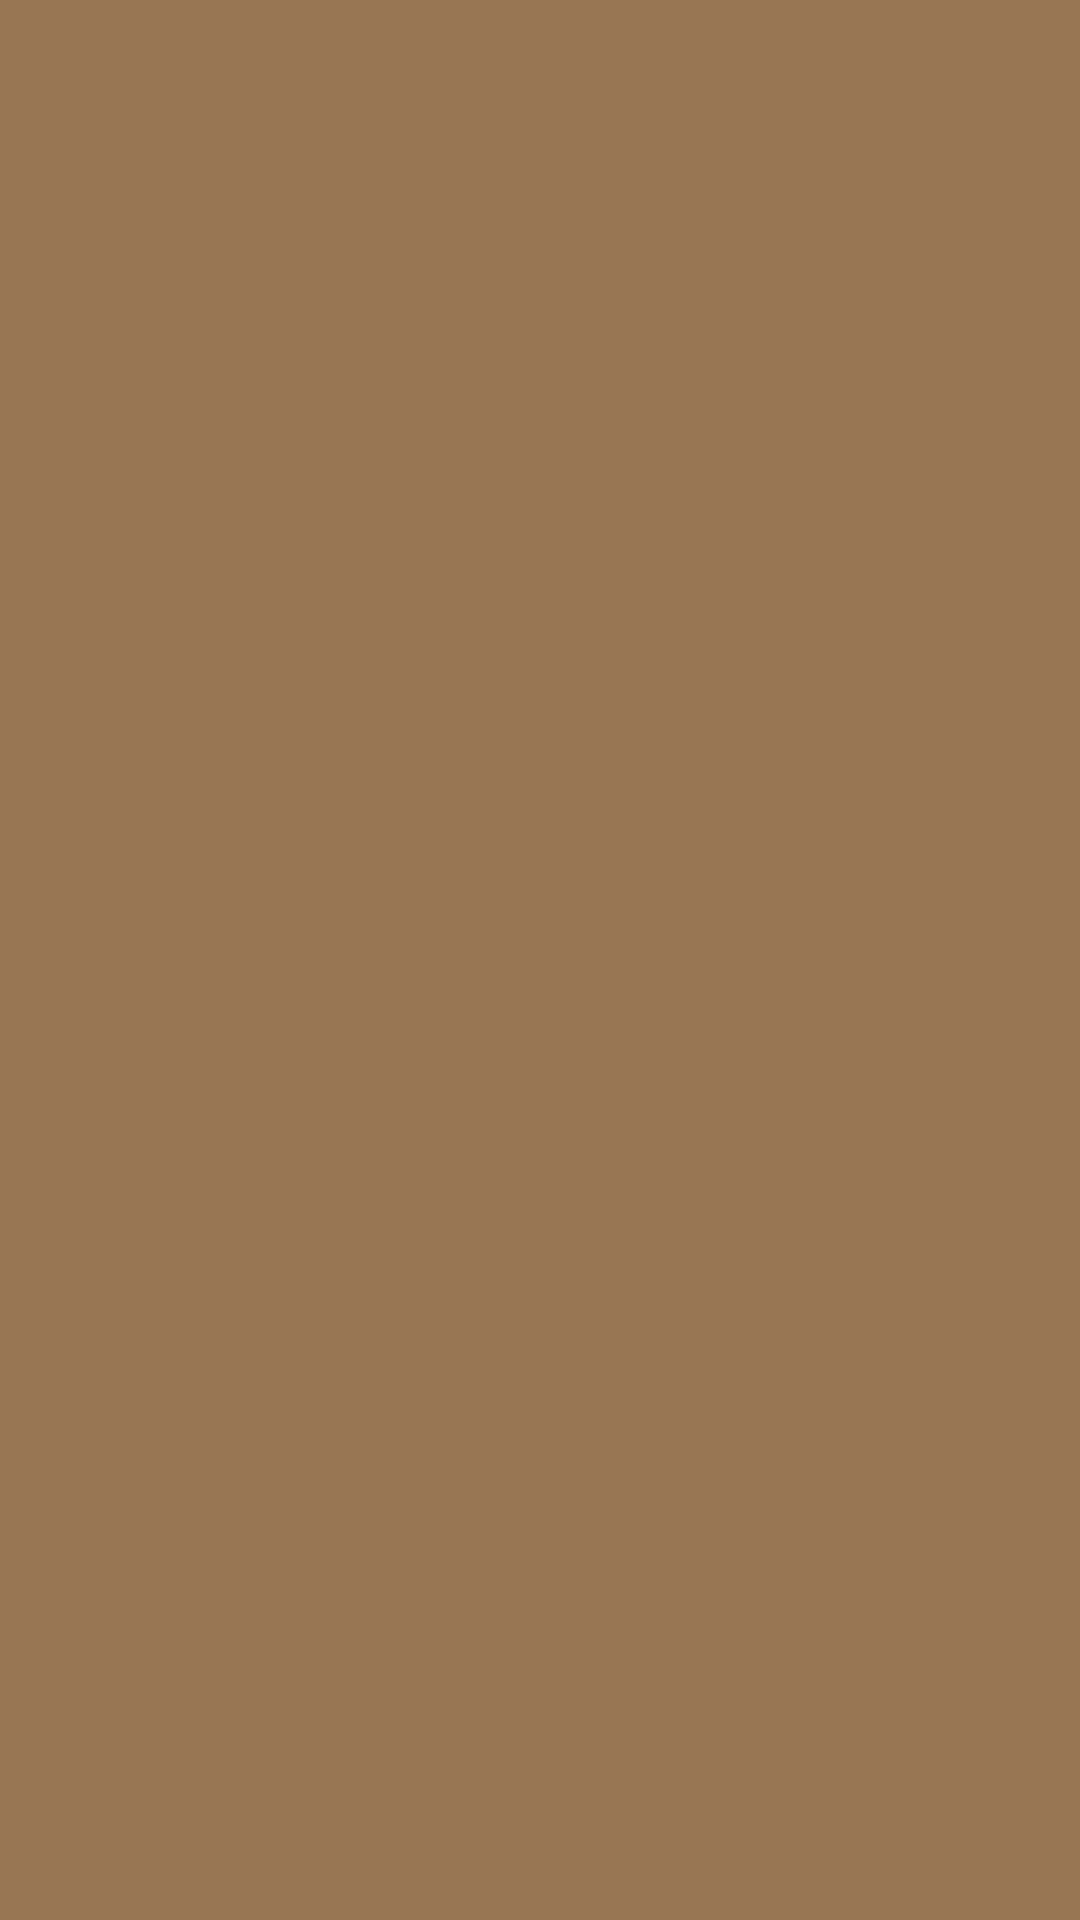 1080x1920 Pale Brown Solid Color Background